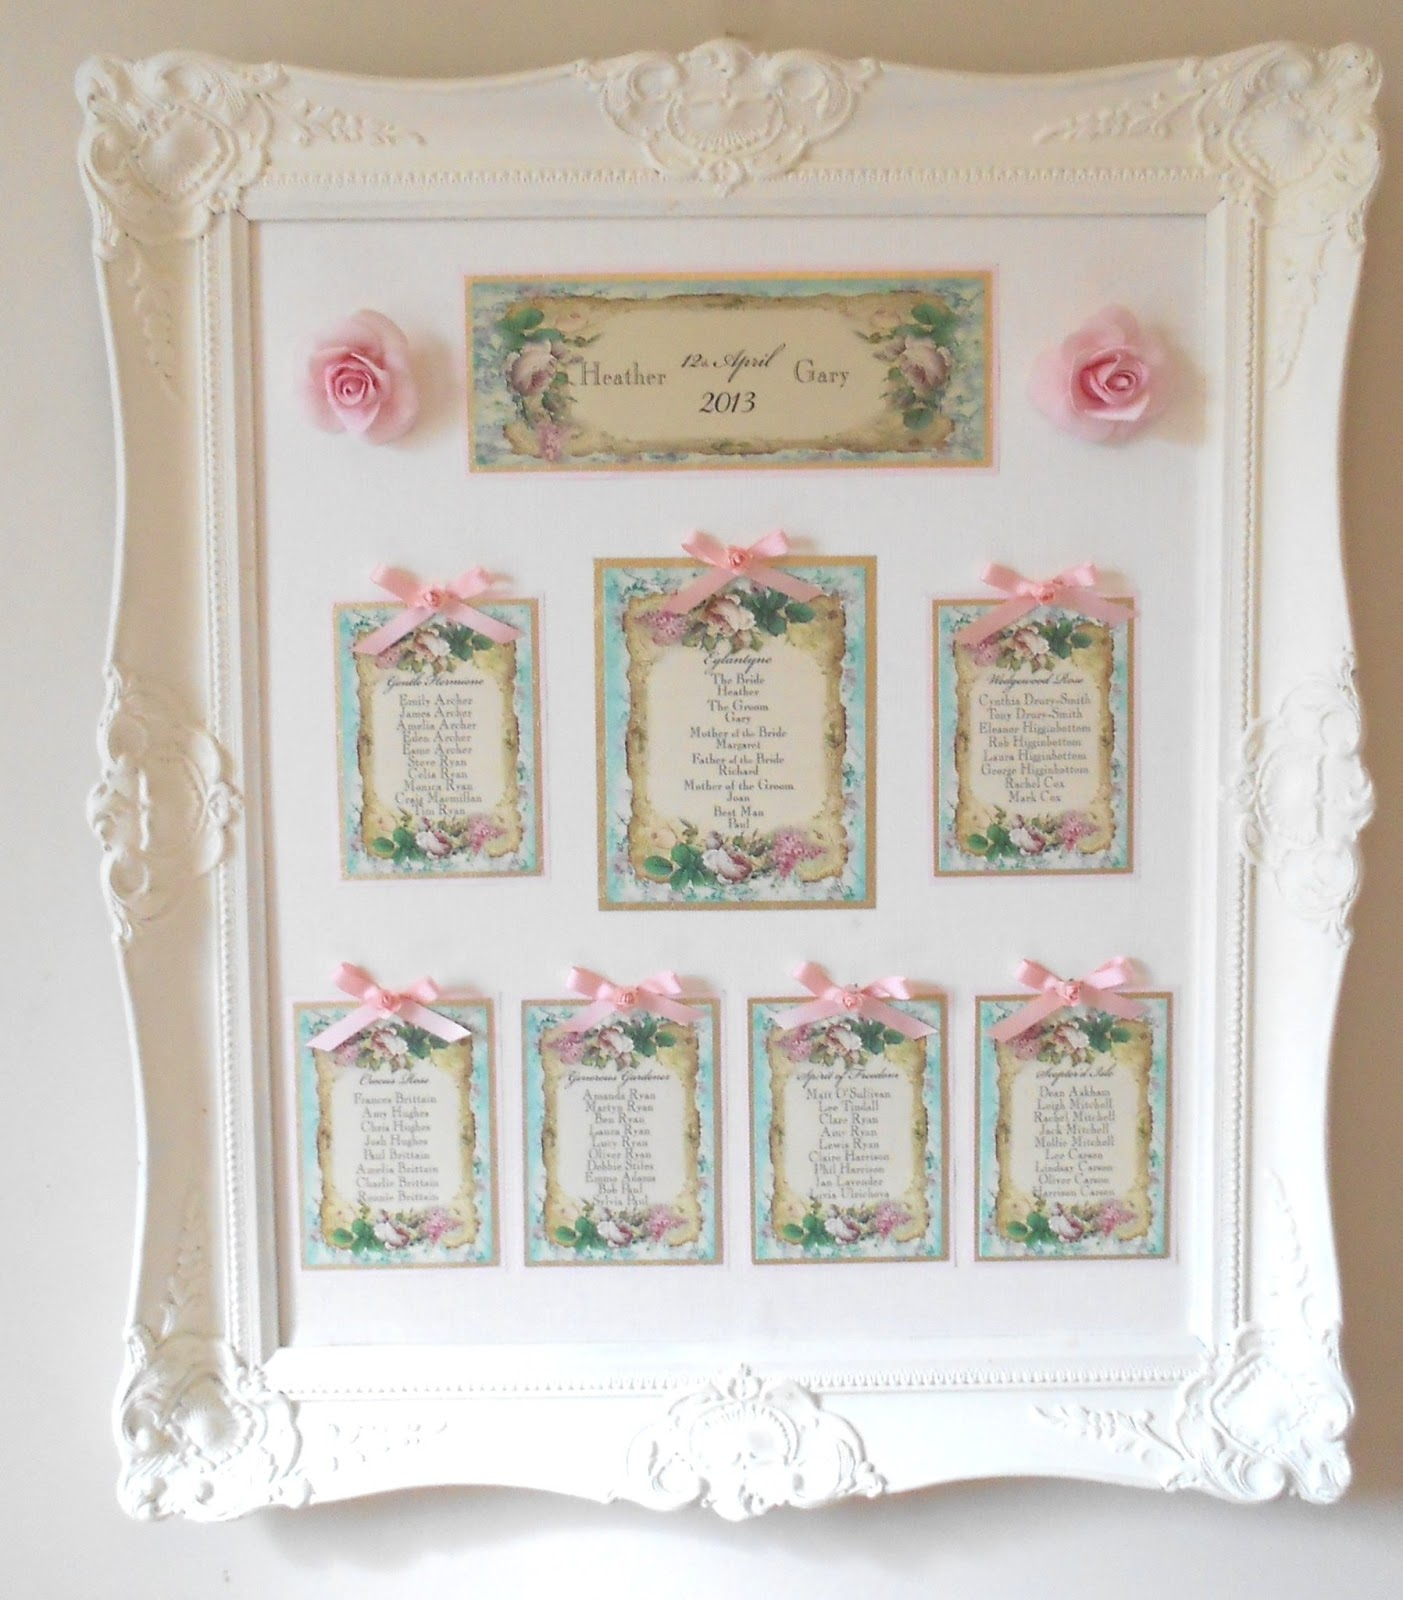 Adore These Ornate Frames It 39 S Hard To Part With Them Table Plans